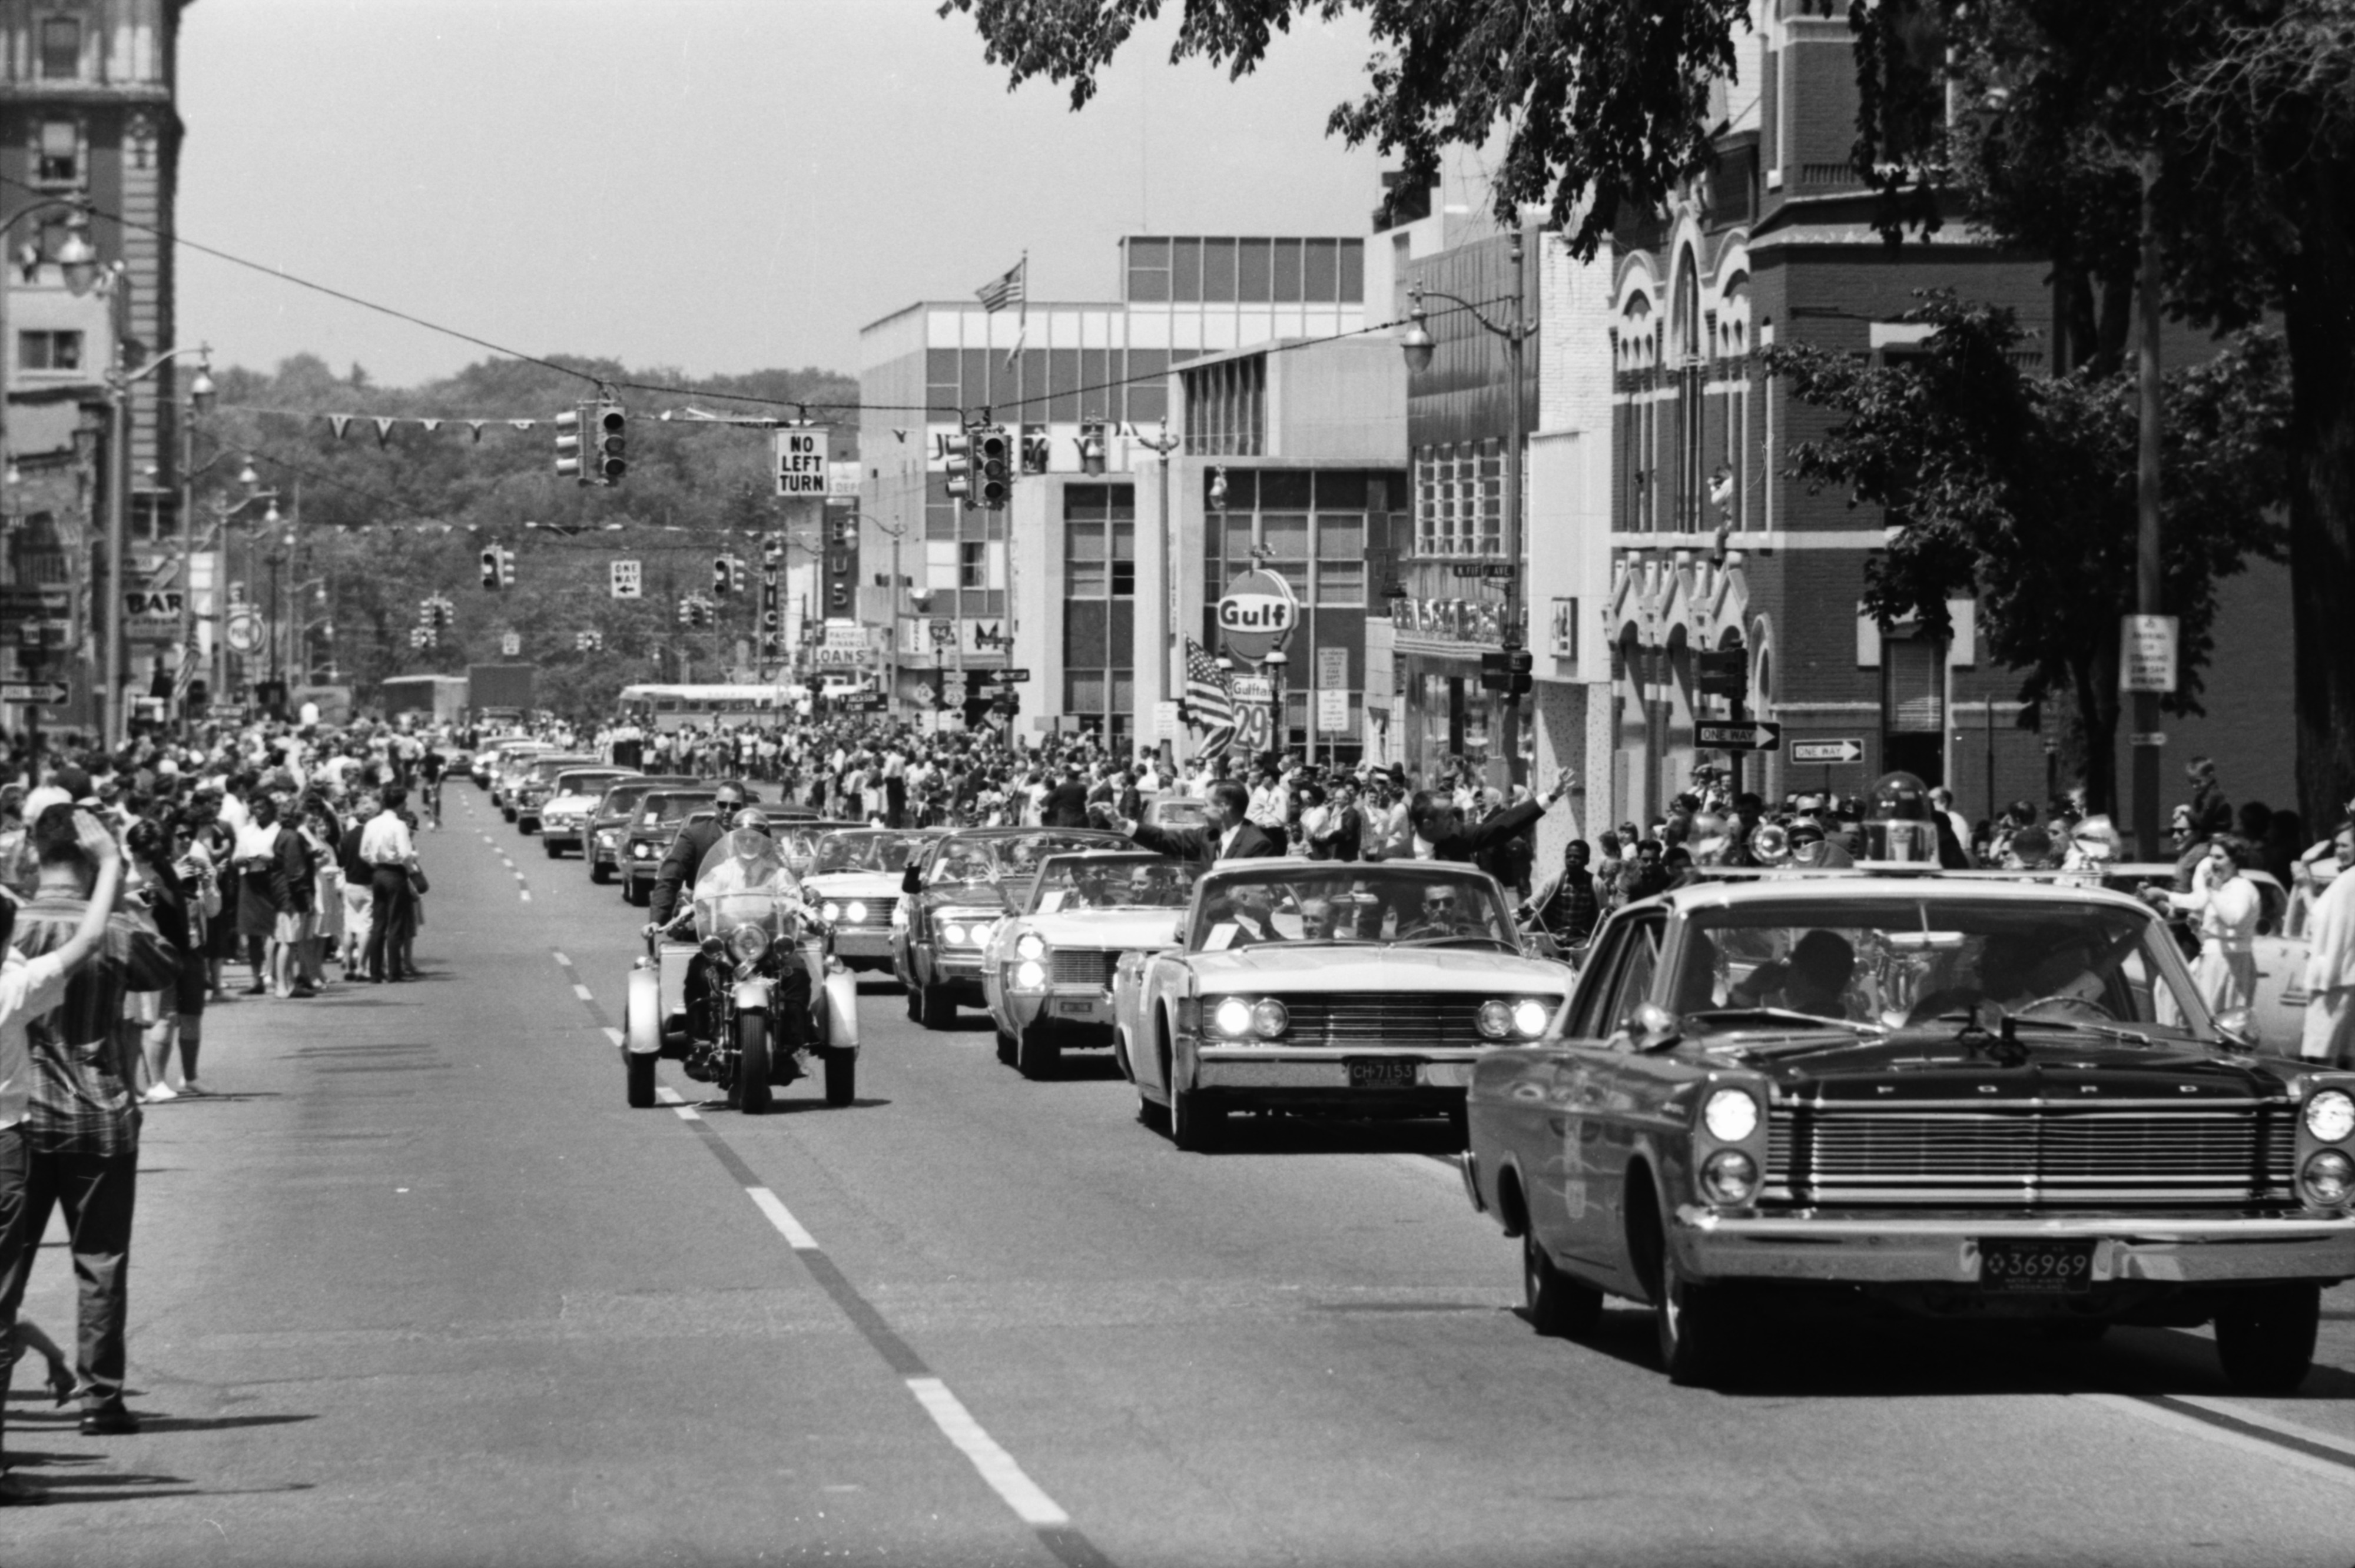 Astronauts James A. McDivitt and Edward H. White II in Motorcade through Ann Arbor, June 15, 1965 image